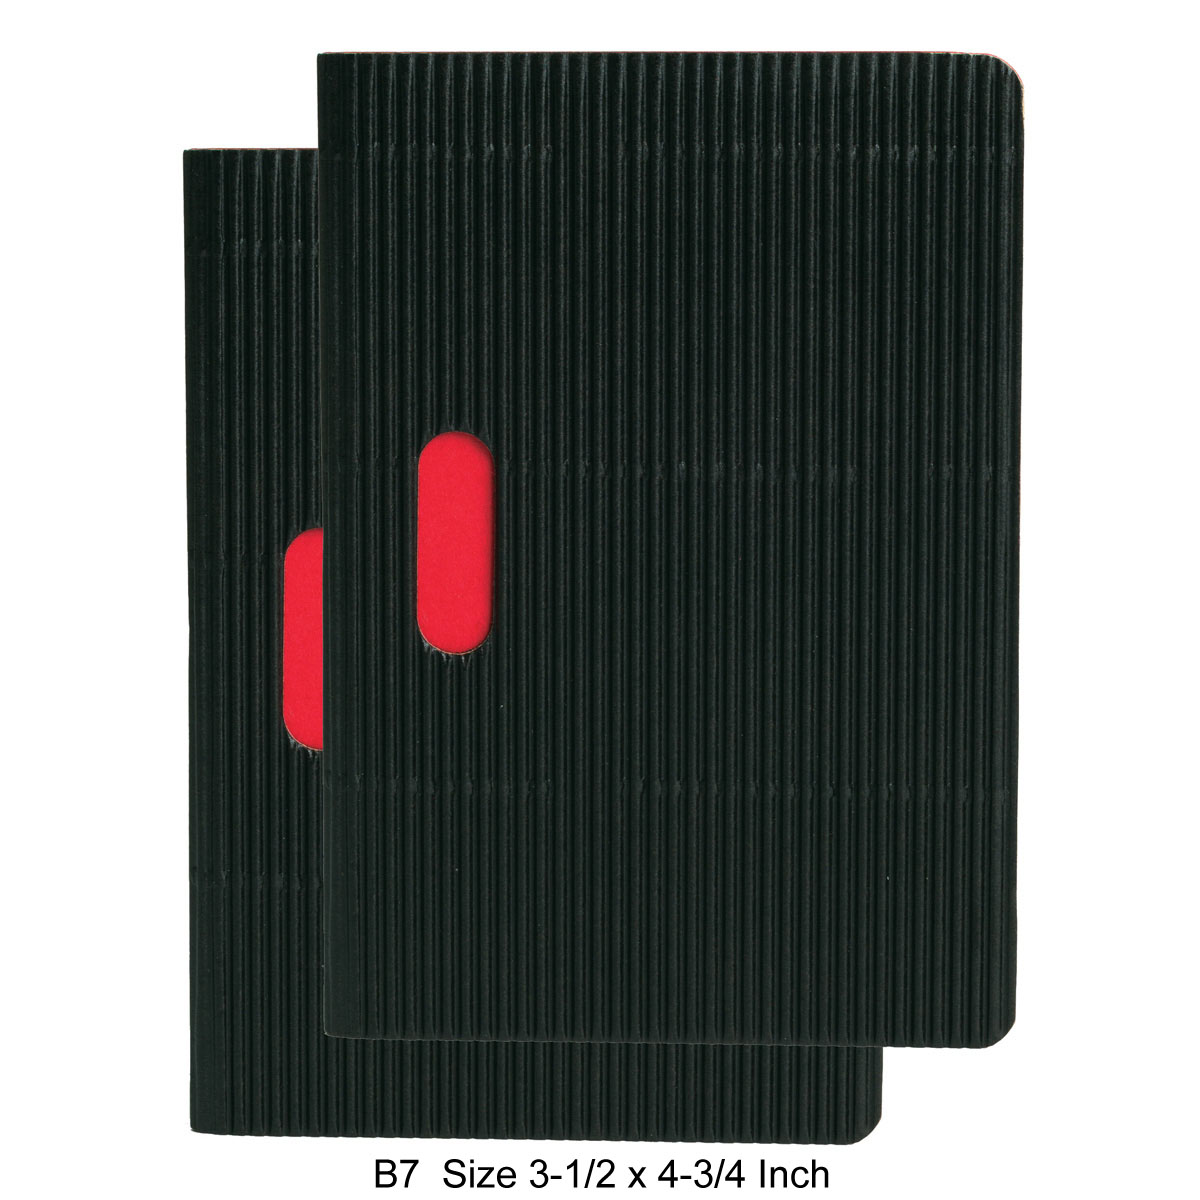 Paper-Oh Ondulo Cahier Notebook B7 Size Set of 2